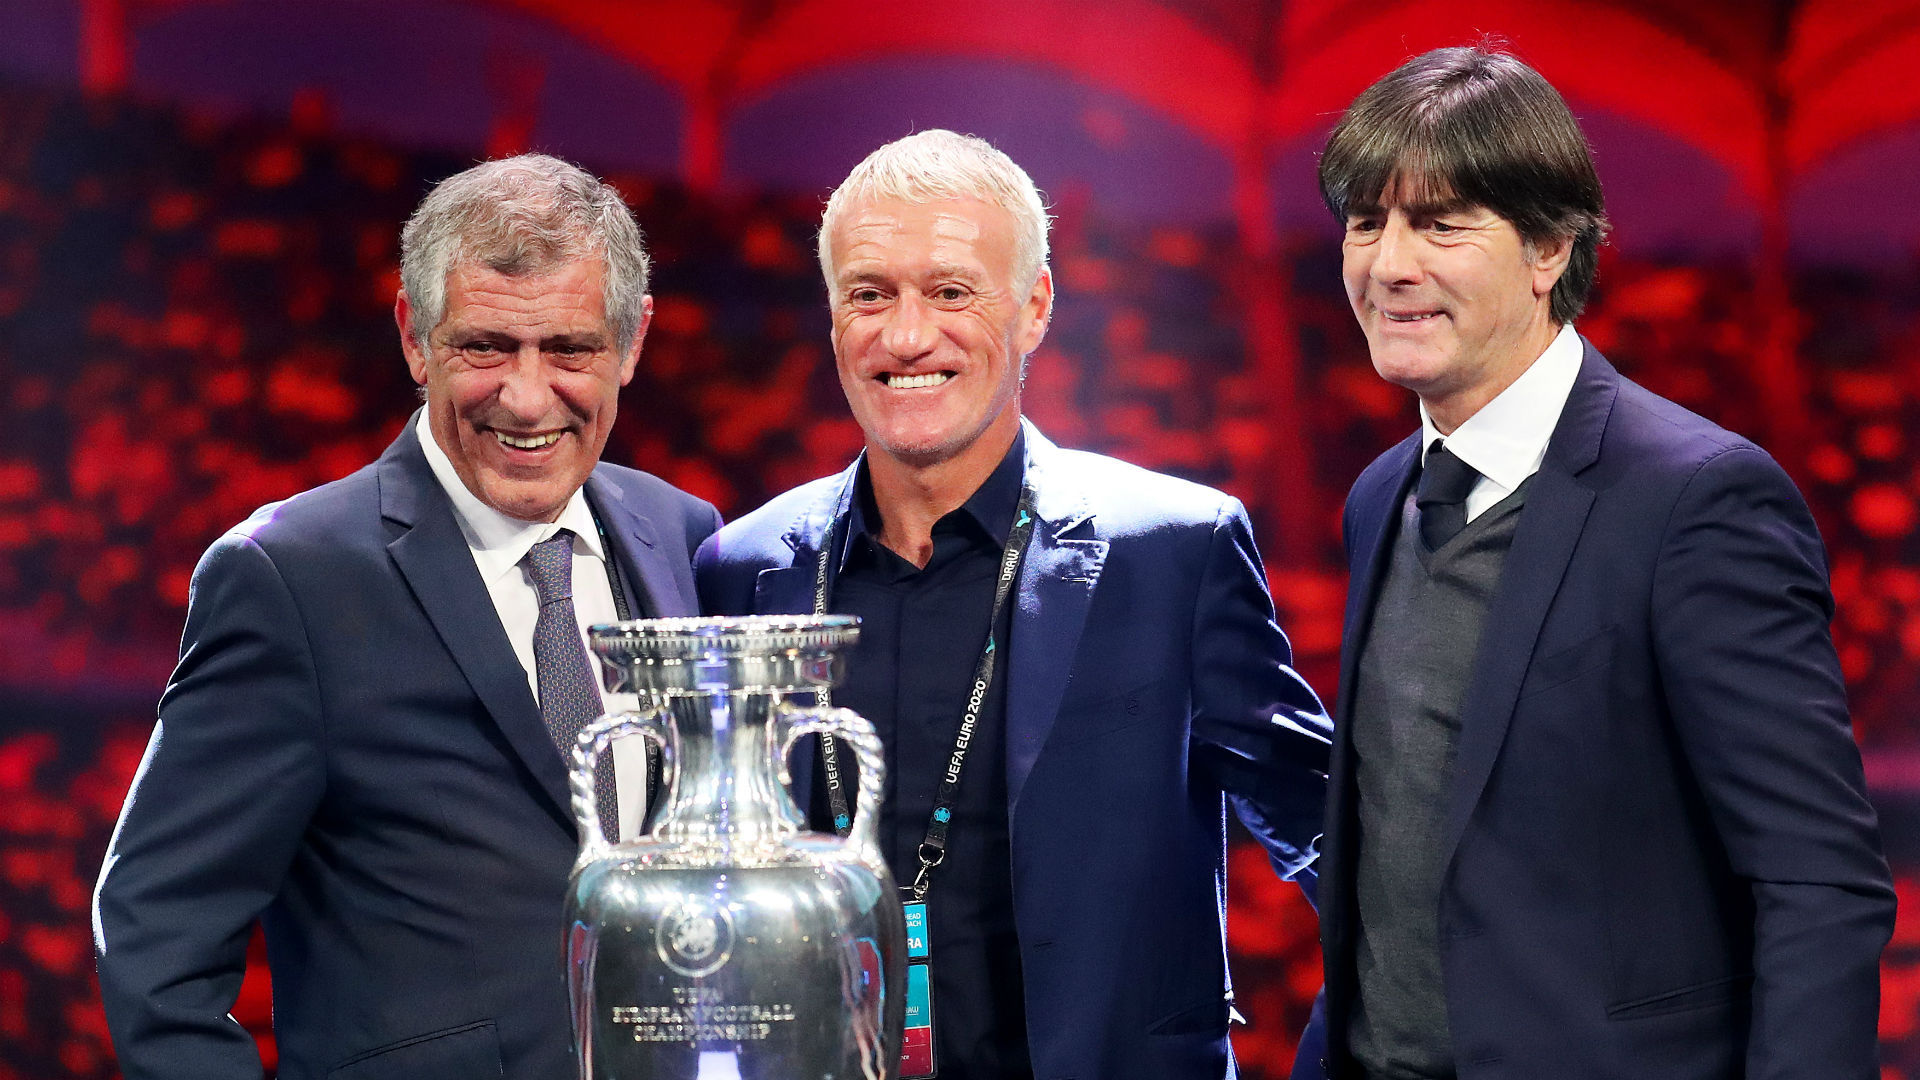 Euro 2020 draw: Portugal, Germany and France in Group F, England and Croatia together again